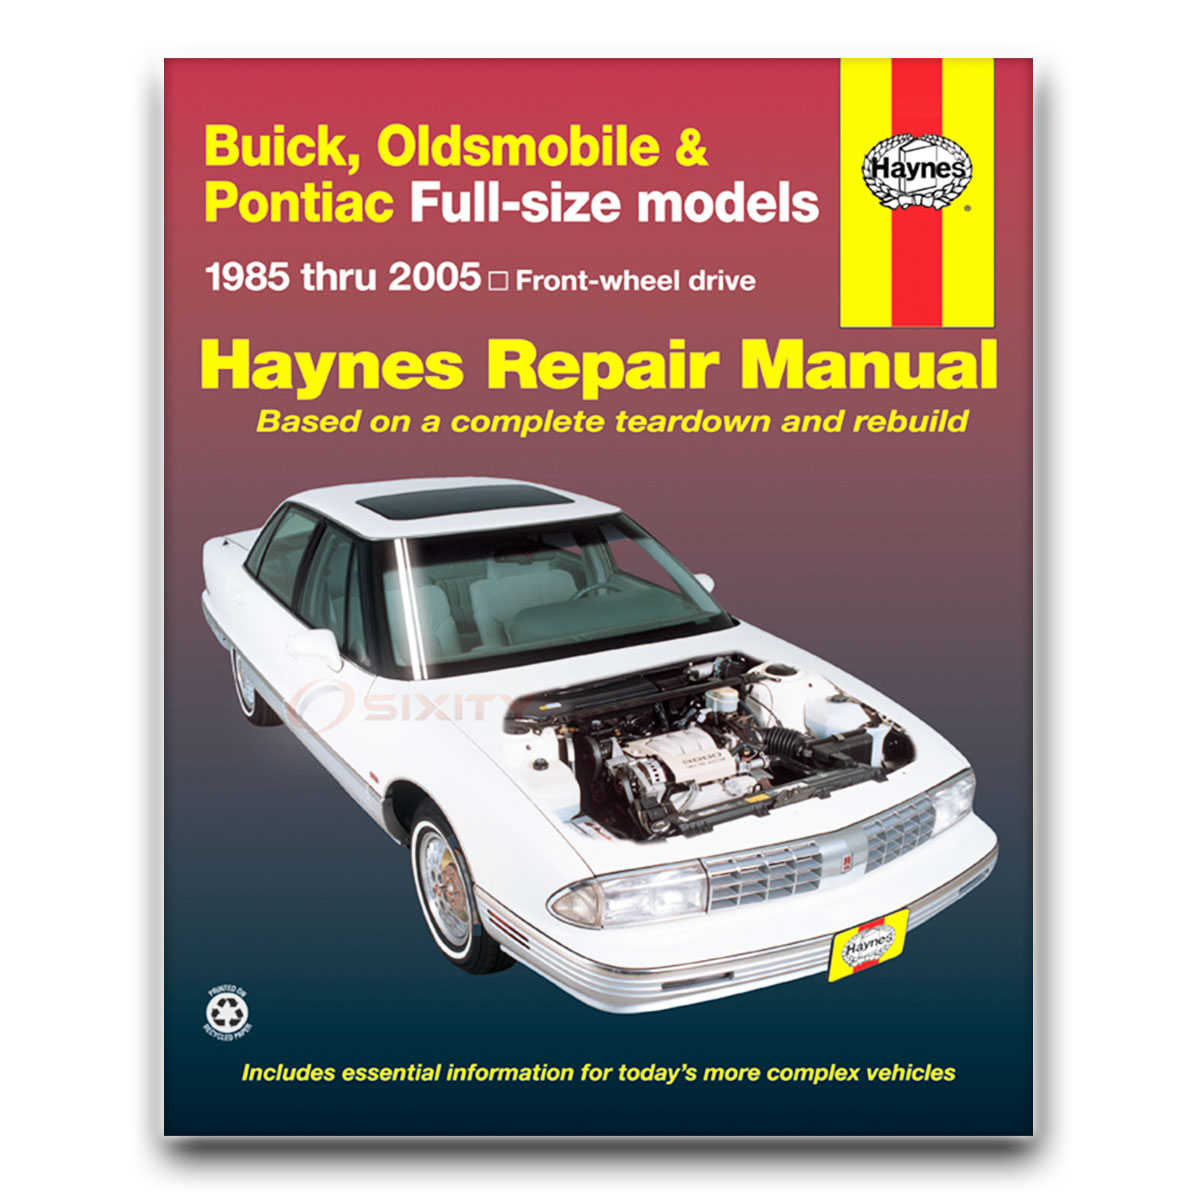 haynes repair manual for buick park avenue base ultra shop service rh ebay  com 1994 buick park avenue repair manual buick park avenue service manual